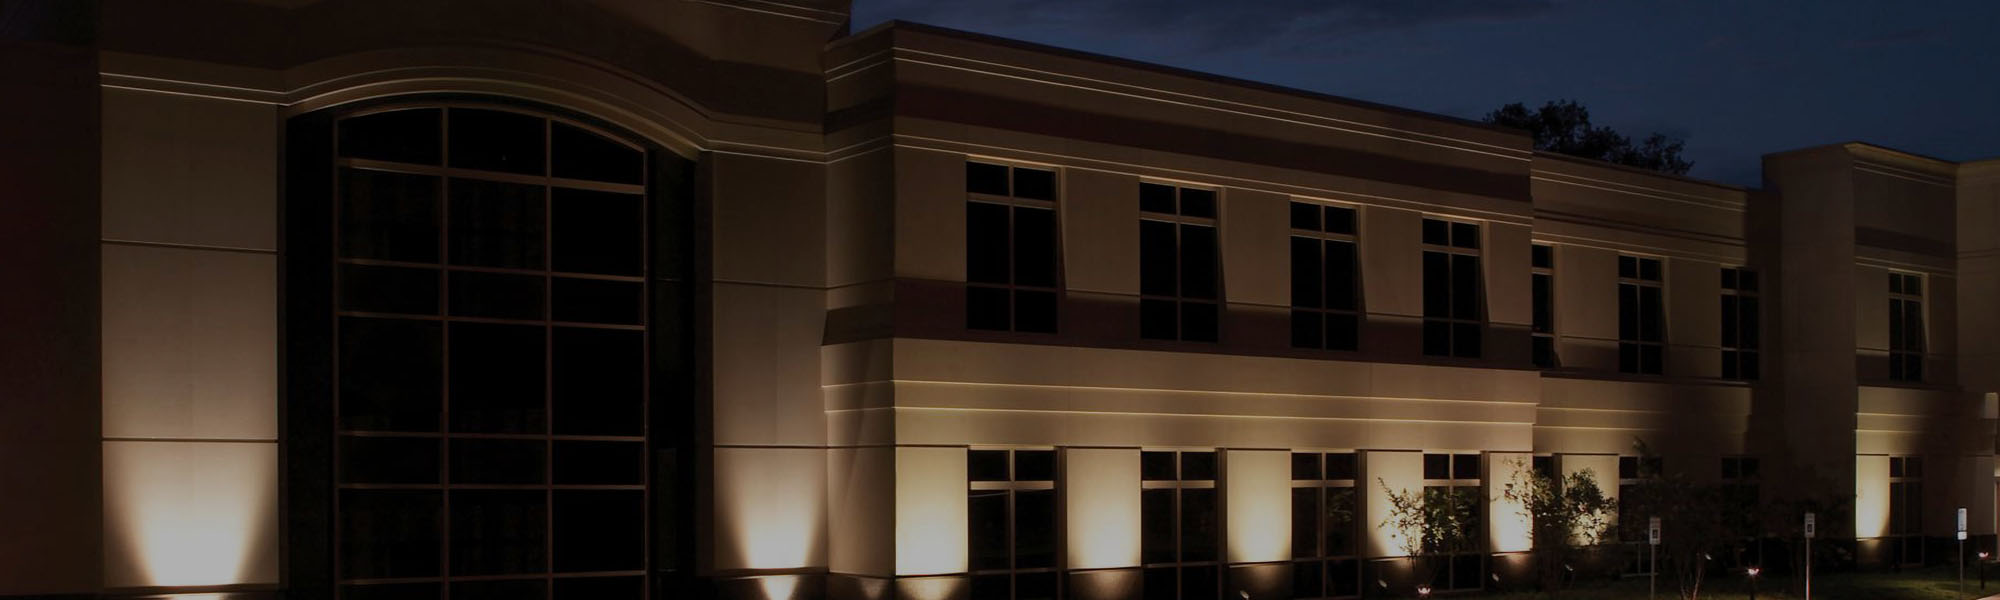 outdoor lighting installation houston texas electrical residential